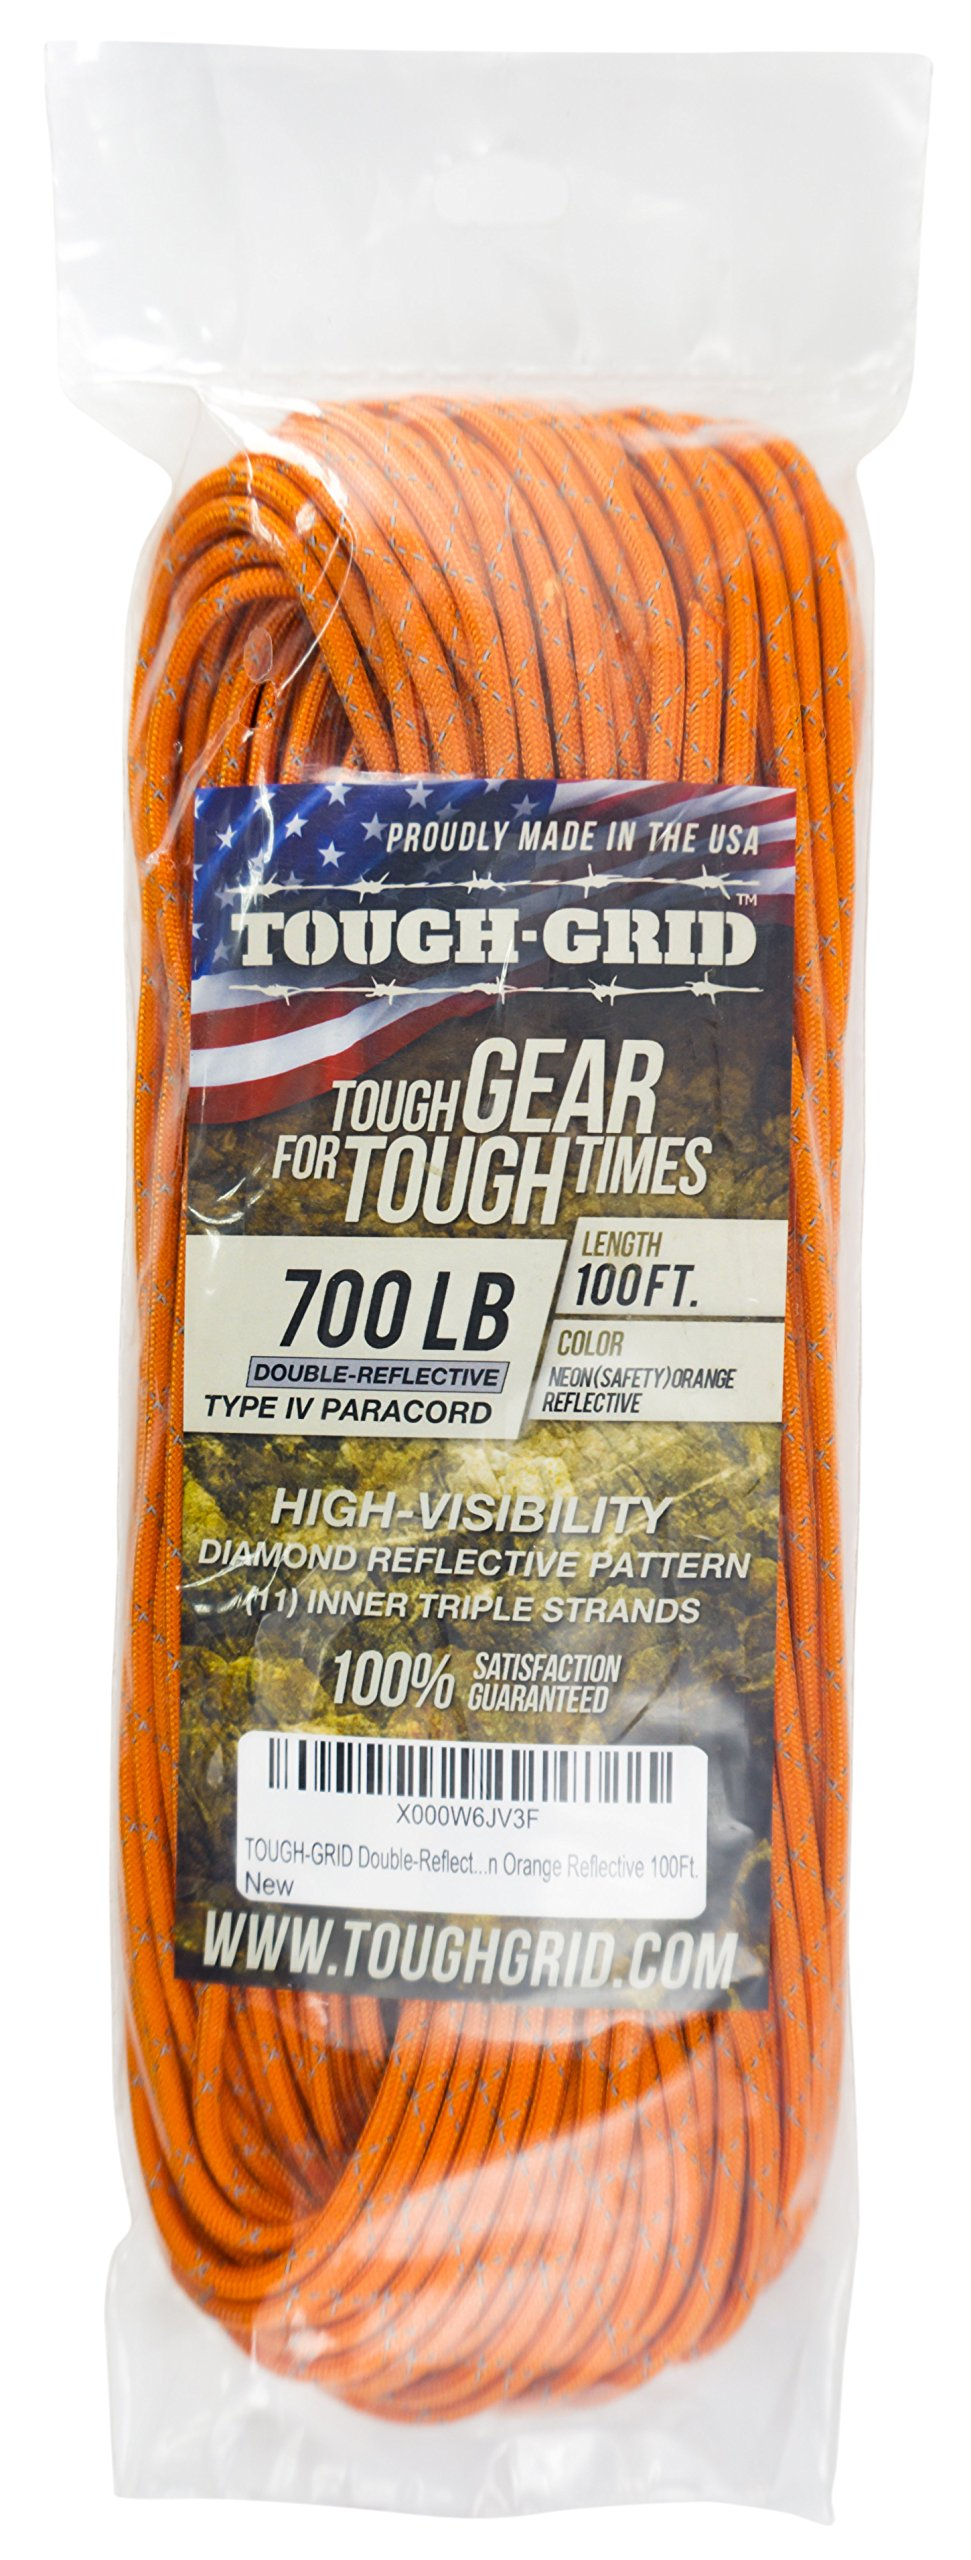 TOUGH-GRID New 700lb Double-Reflective Paracord/Parachute Cord - 2 Vibrant Retro-Reflective Strands for The Ultimate High-Visibility Cord - 100% Nylon - Made in USA - 100Ft. Neon Orange Reflective by TOUGH-GRID (Image #4)